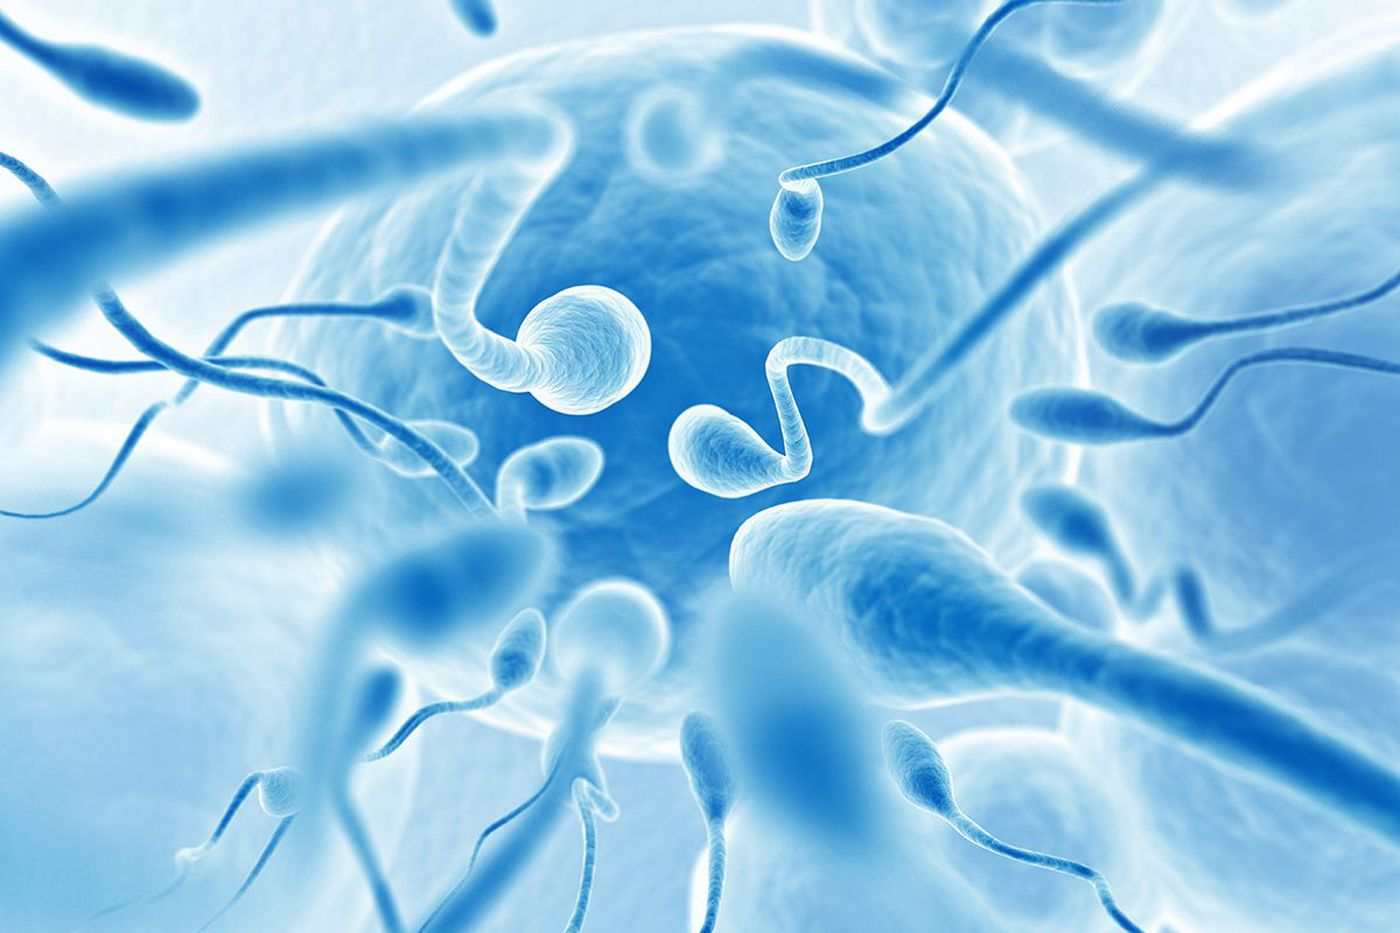 5 questions: Declining sperm counts and infertility